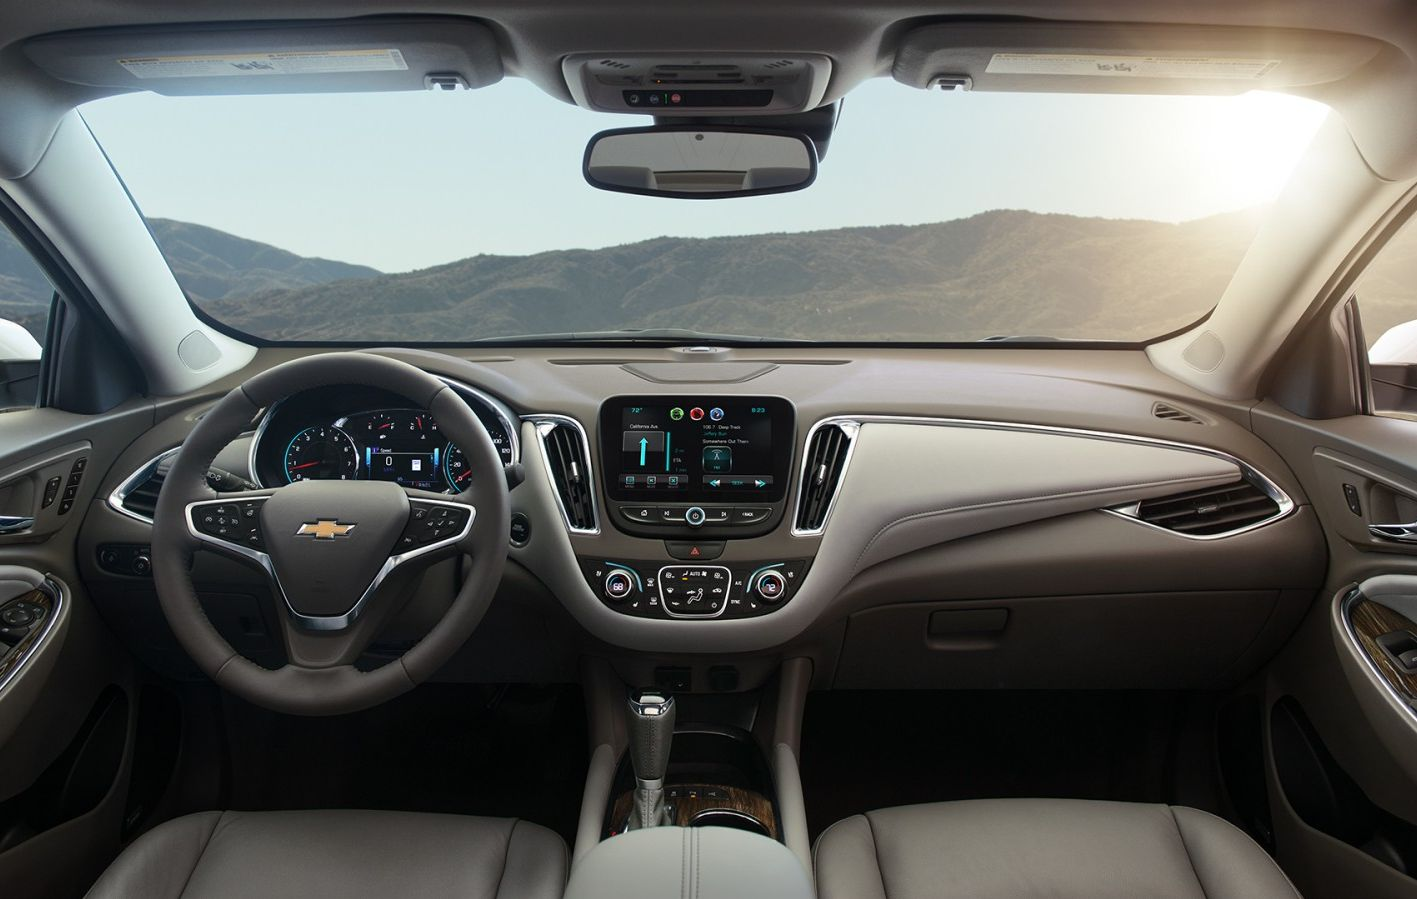 Get Behind the Wheel of the Malibu with Confidence